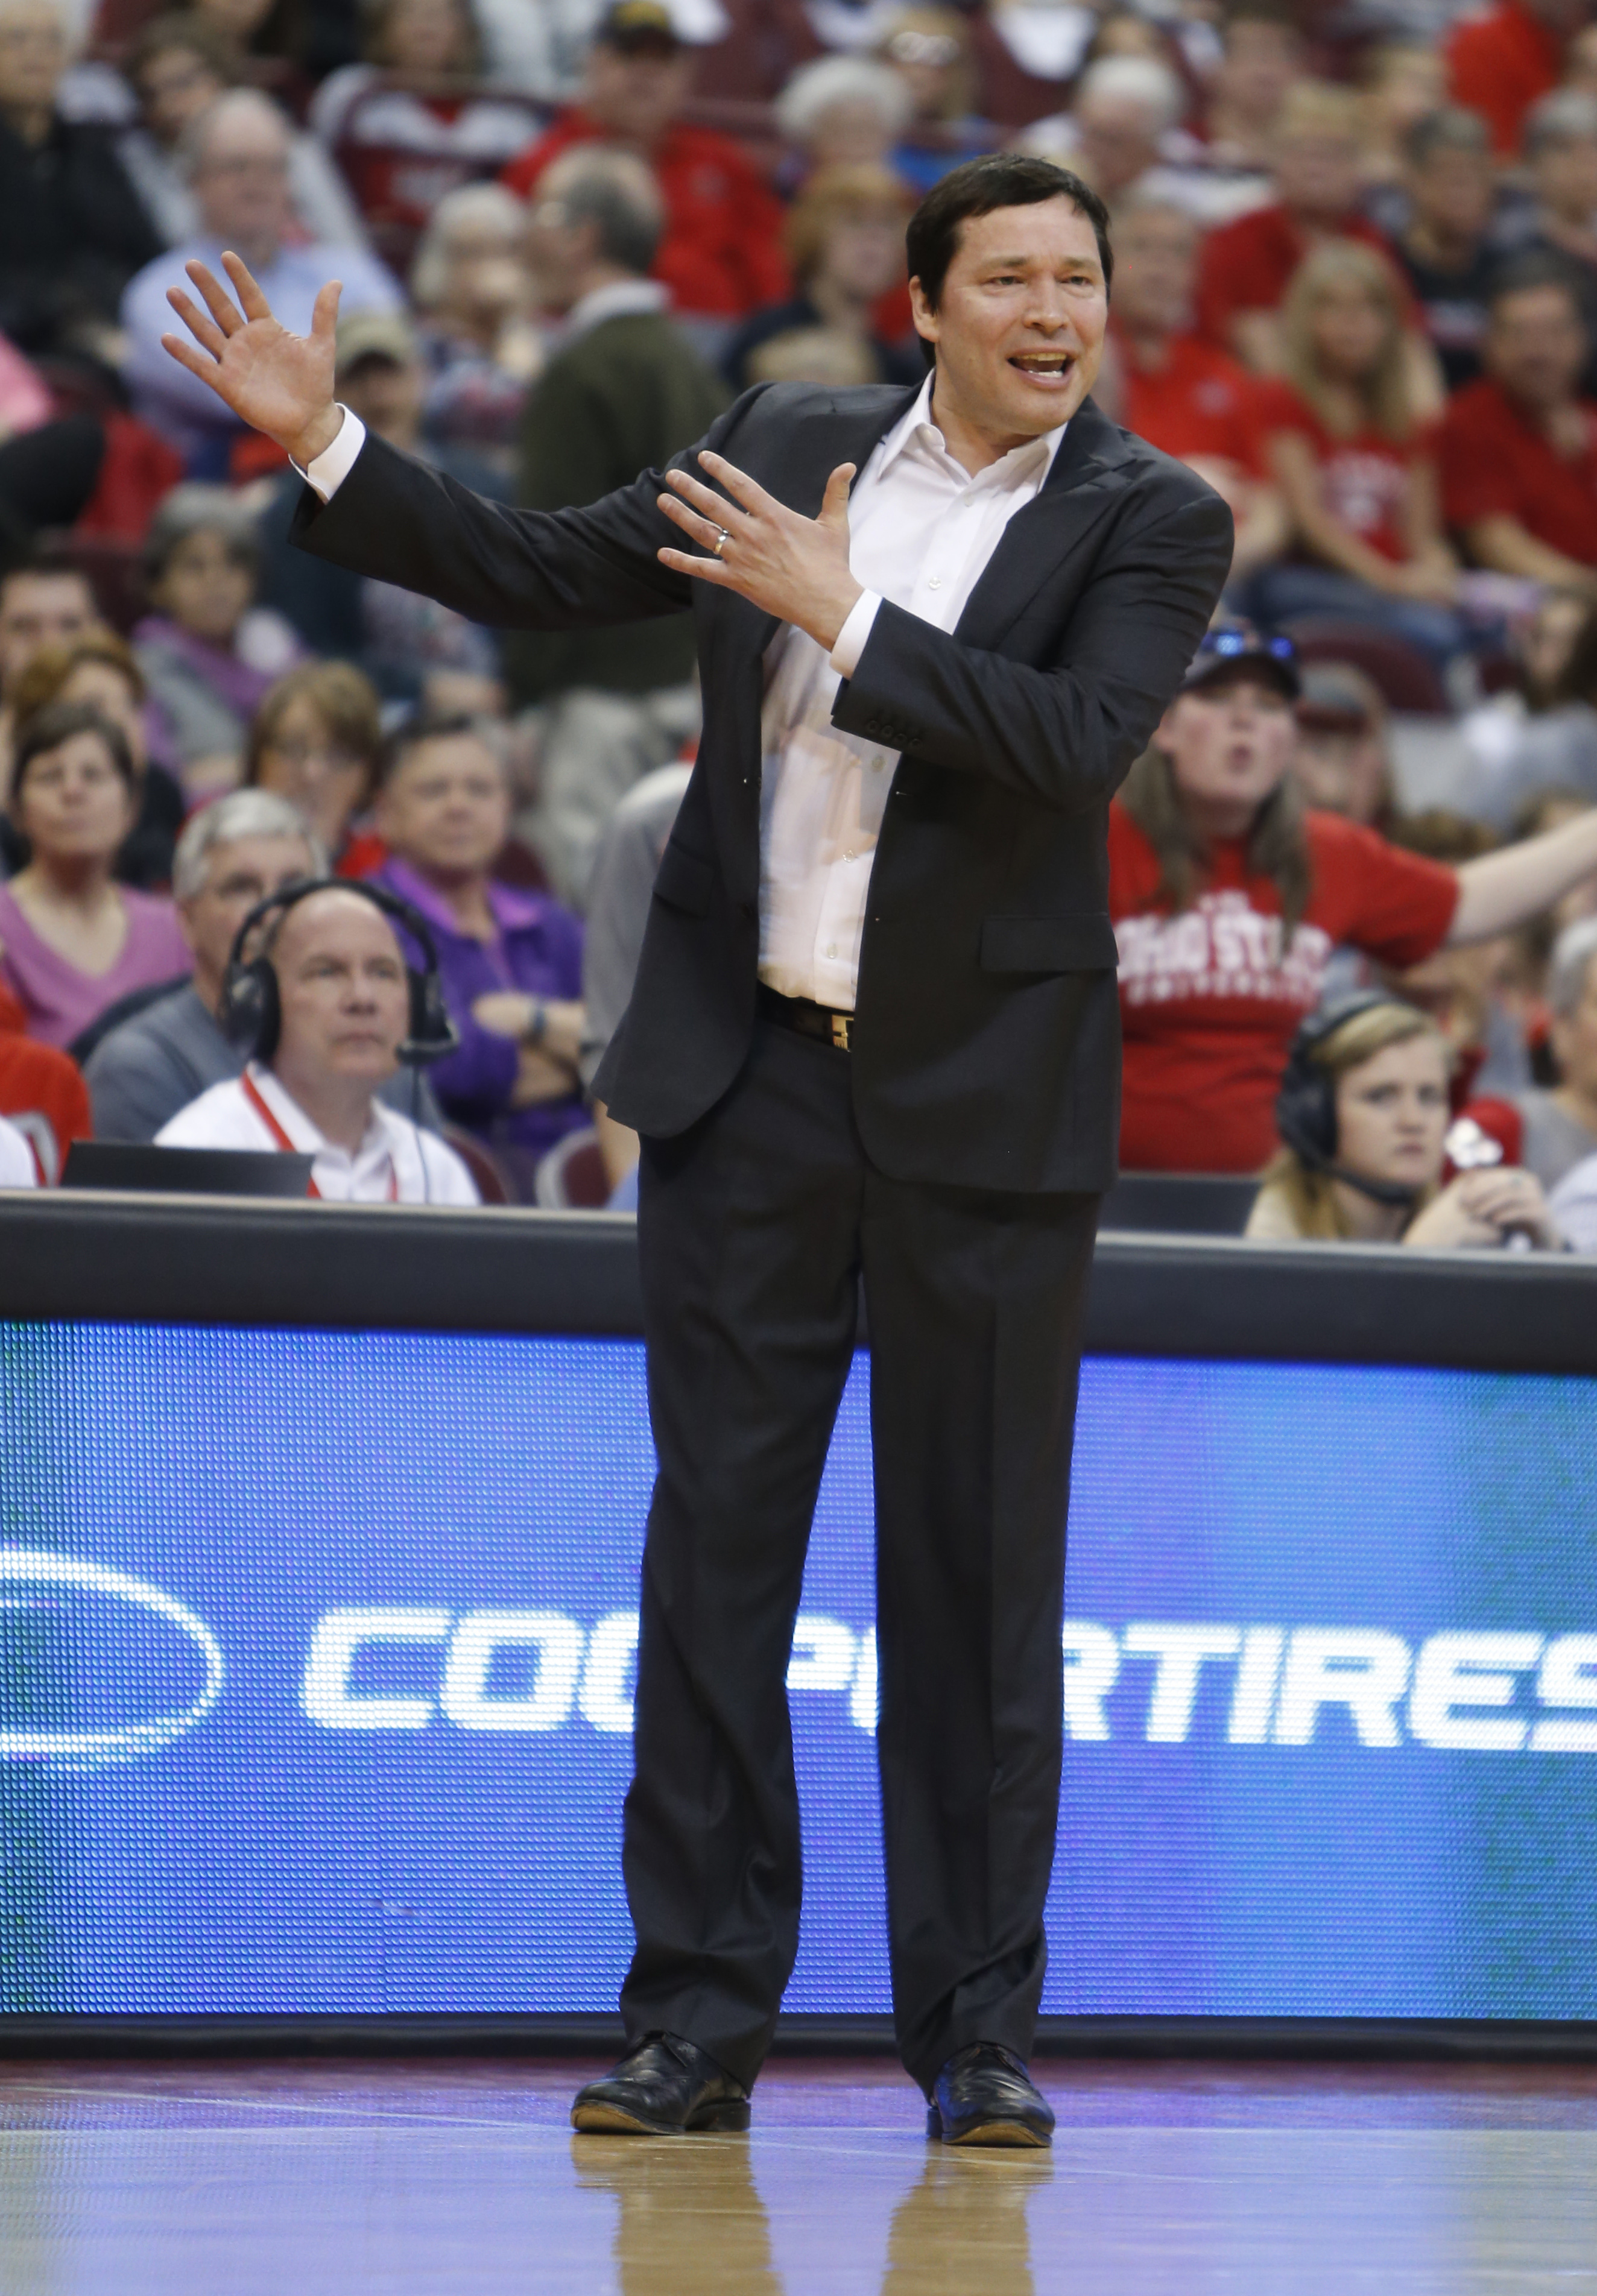 Ohio State head coach Kevin McGuff instructs his team against Illinois during the first half of an NCAA college basketball game Sunday, Feb. 21, 2016, in Columbus, Ohio. Ohio State beat Illinois 117-74. (AP Photo/Jay LaPrete)